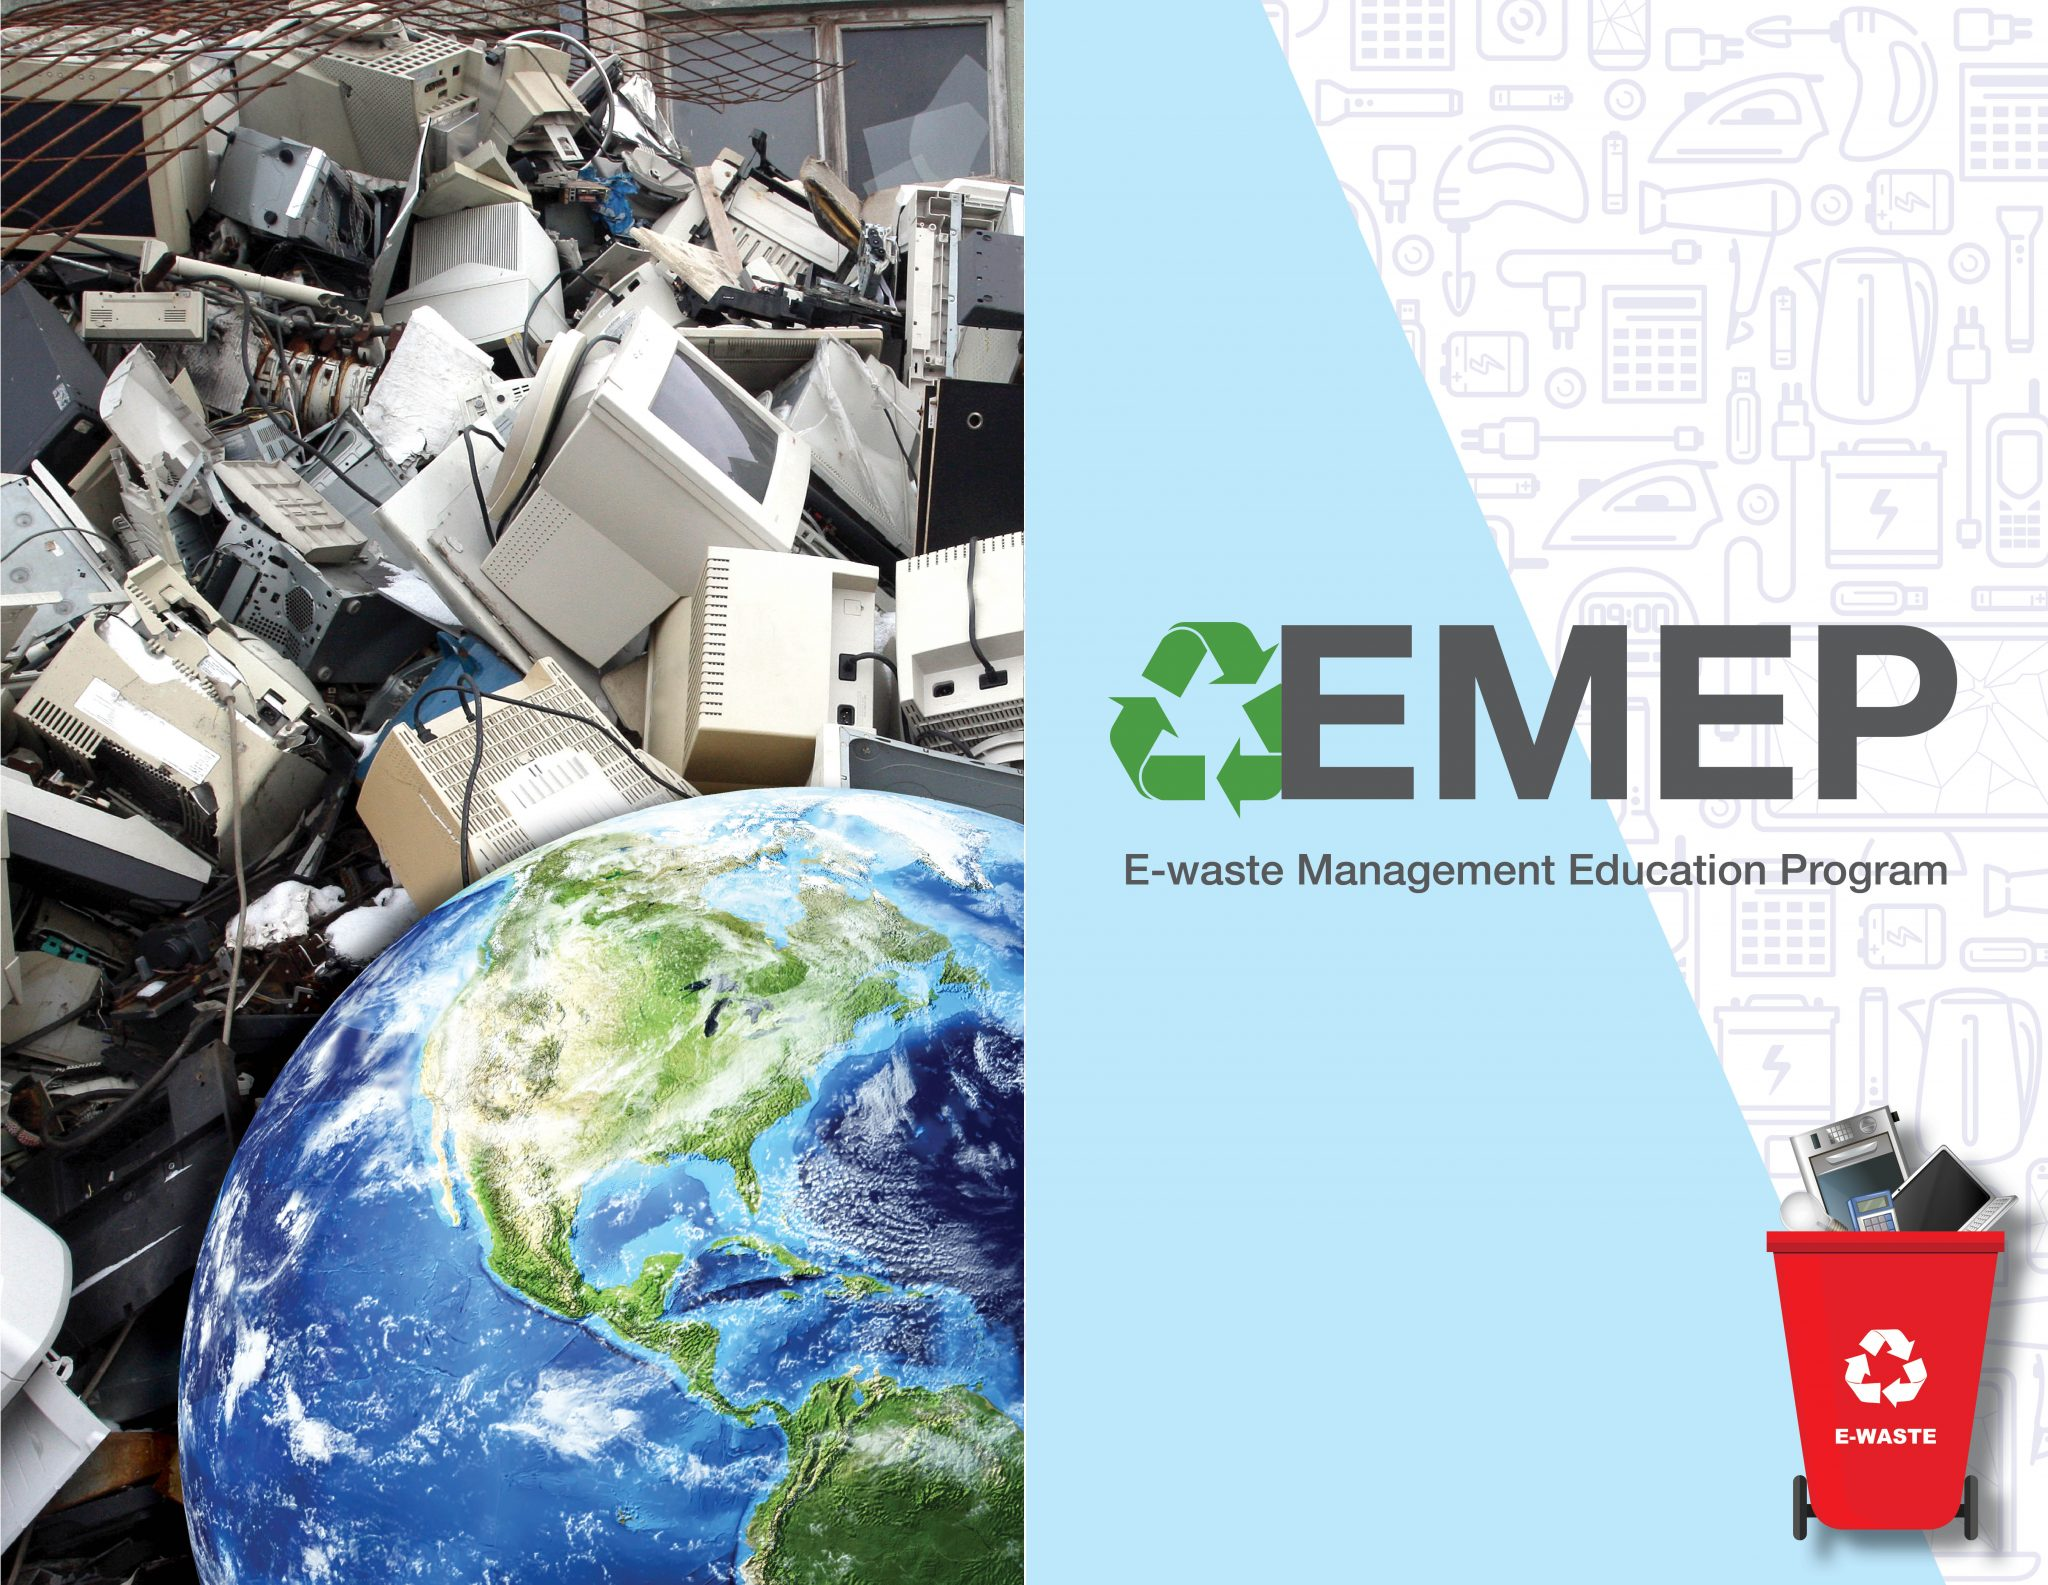 A pile of thrown out electronics ready to be recycled with an image of the Earth in front of it.